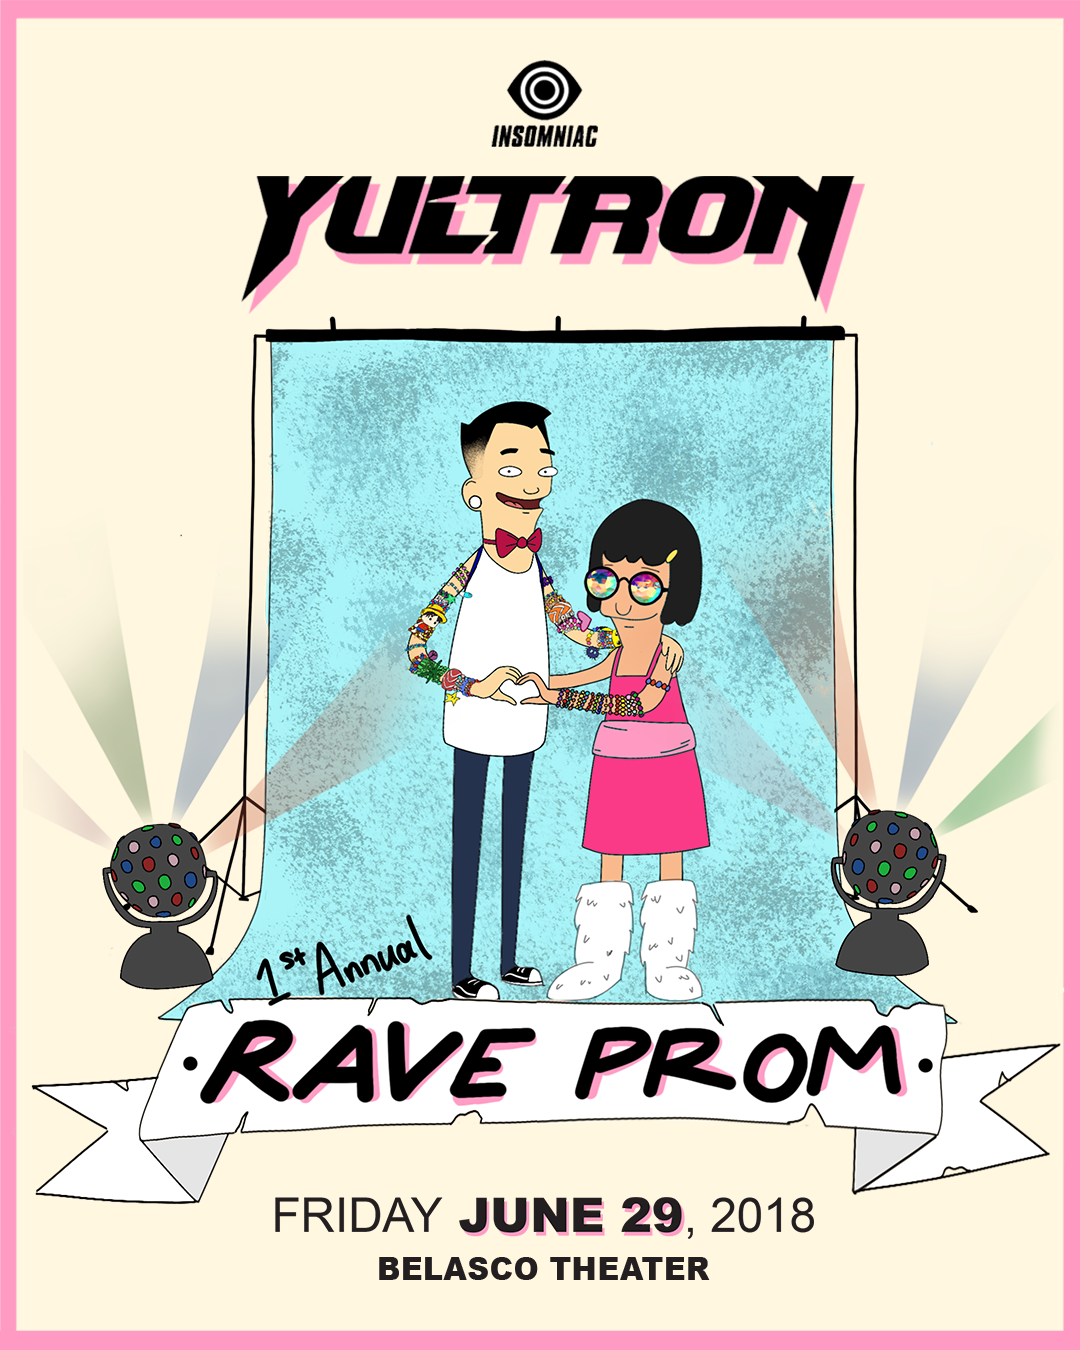 Yultron 1st Annual Rave Prom